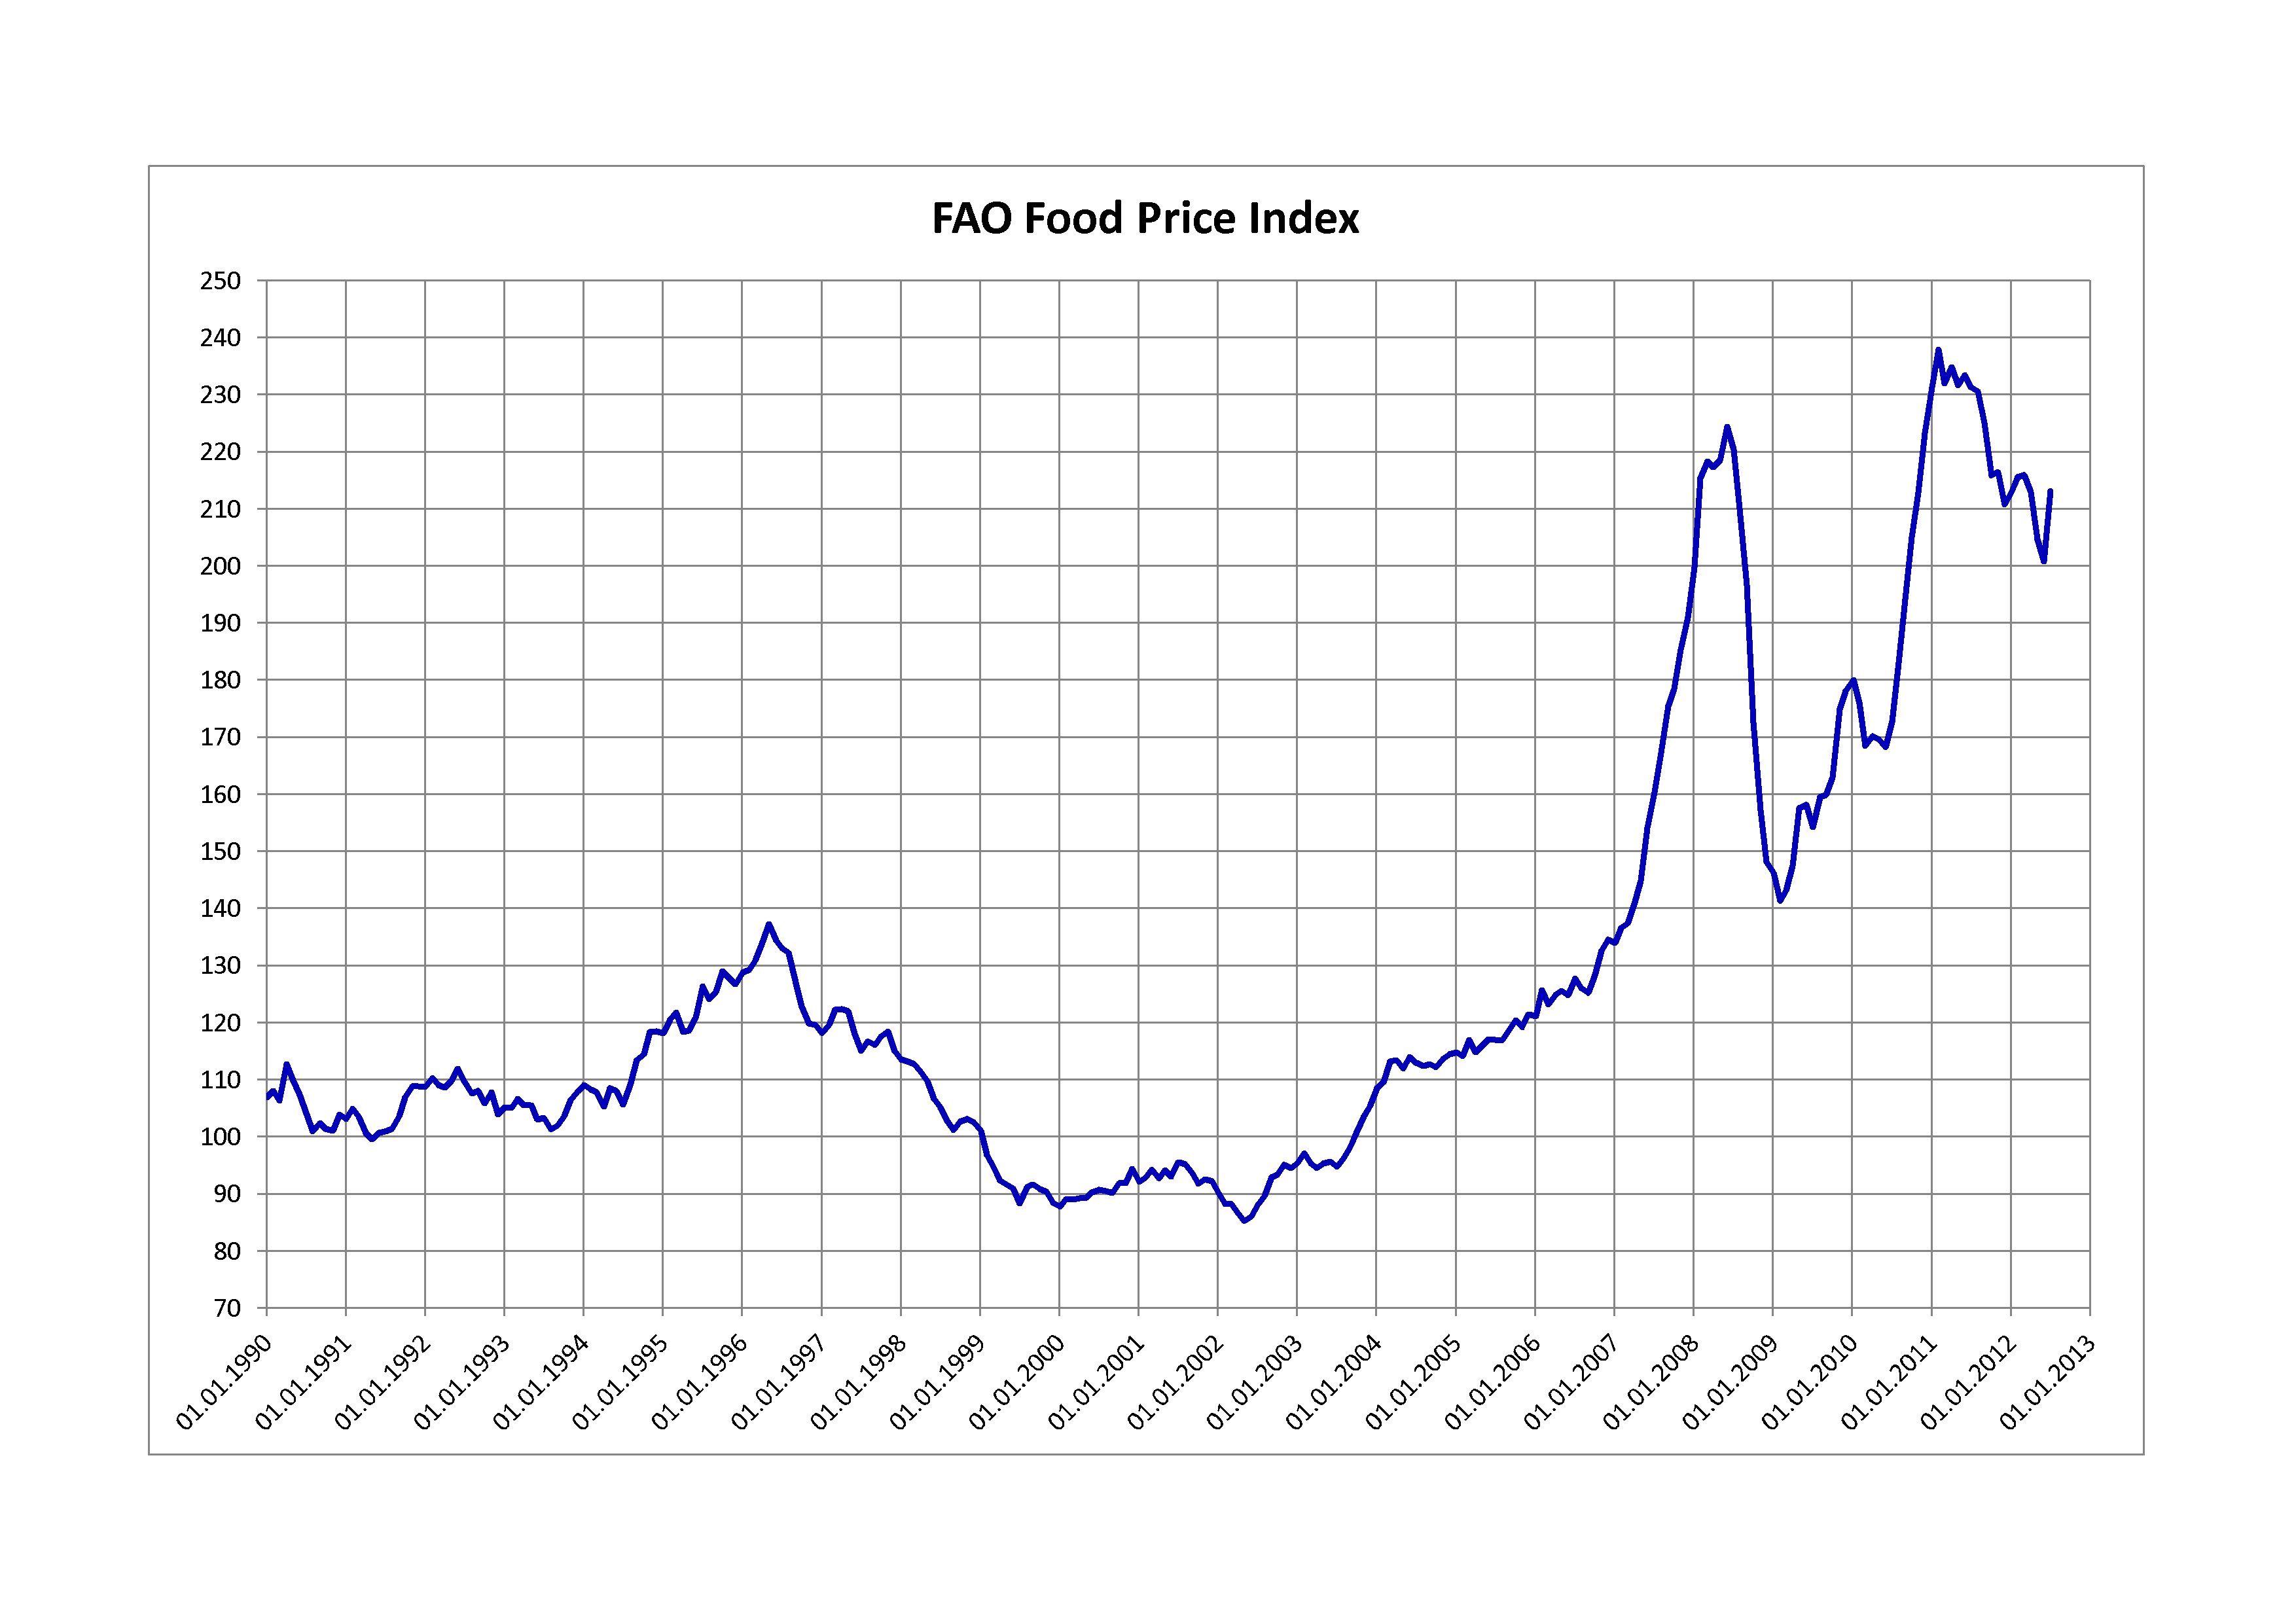 fao_food_price_index.png